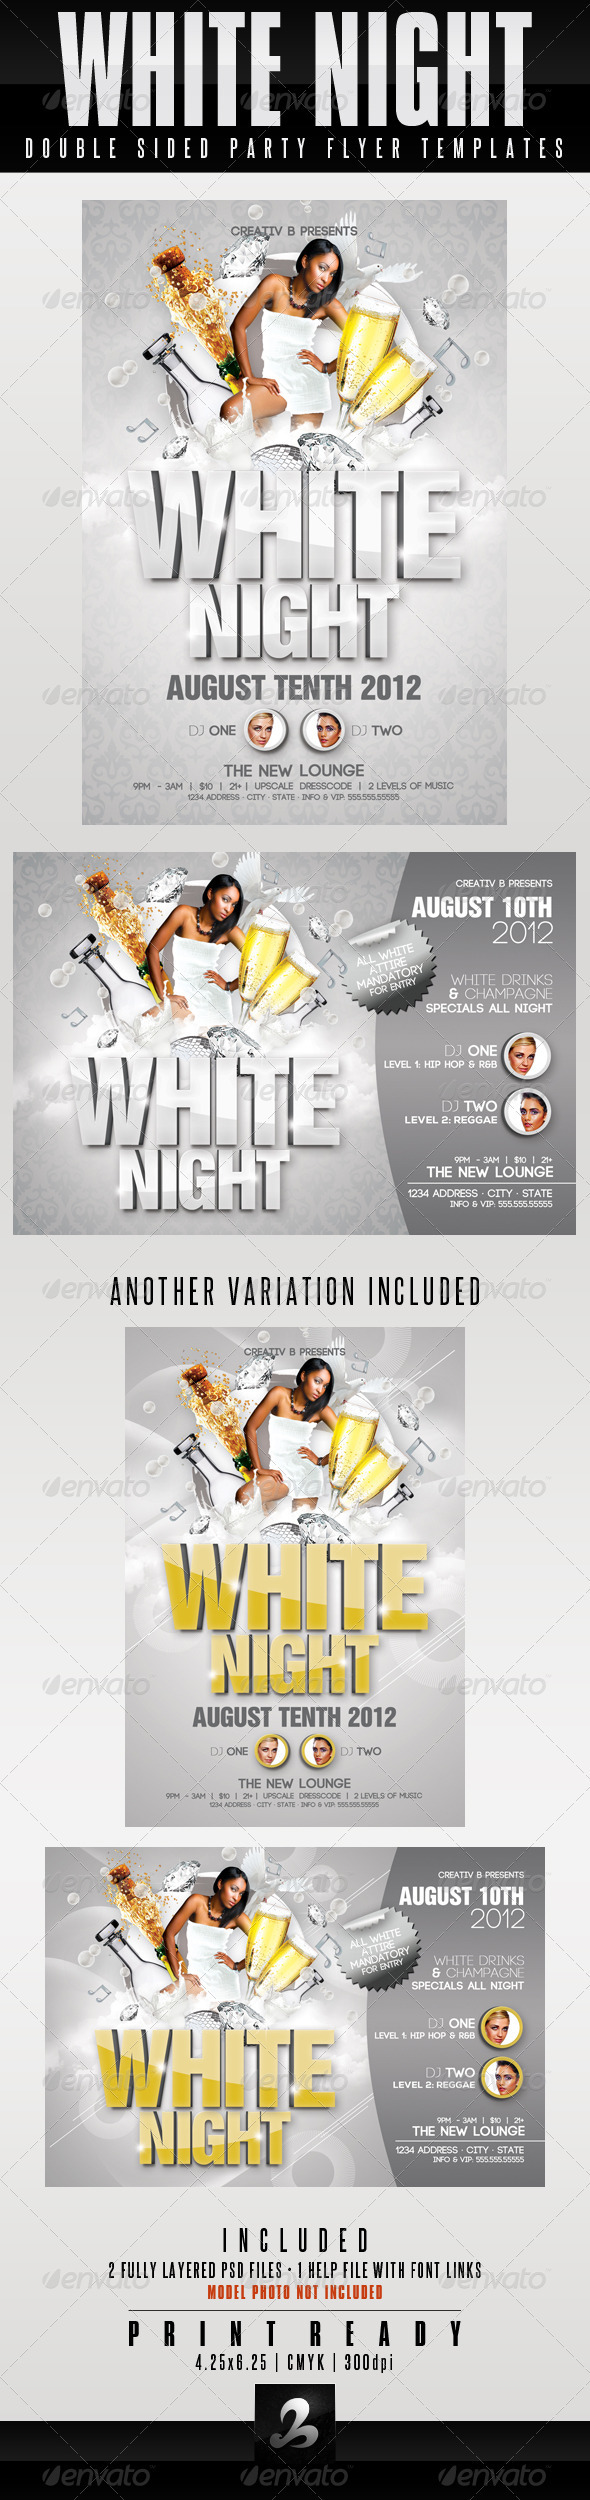 White Night Party Flyer Templates - Clubs & Parties Events